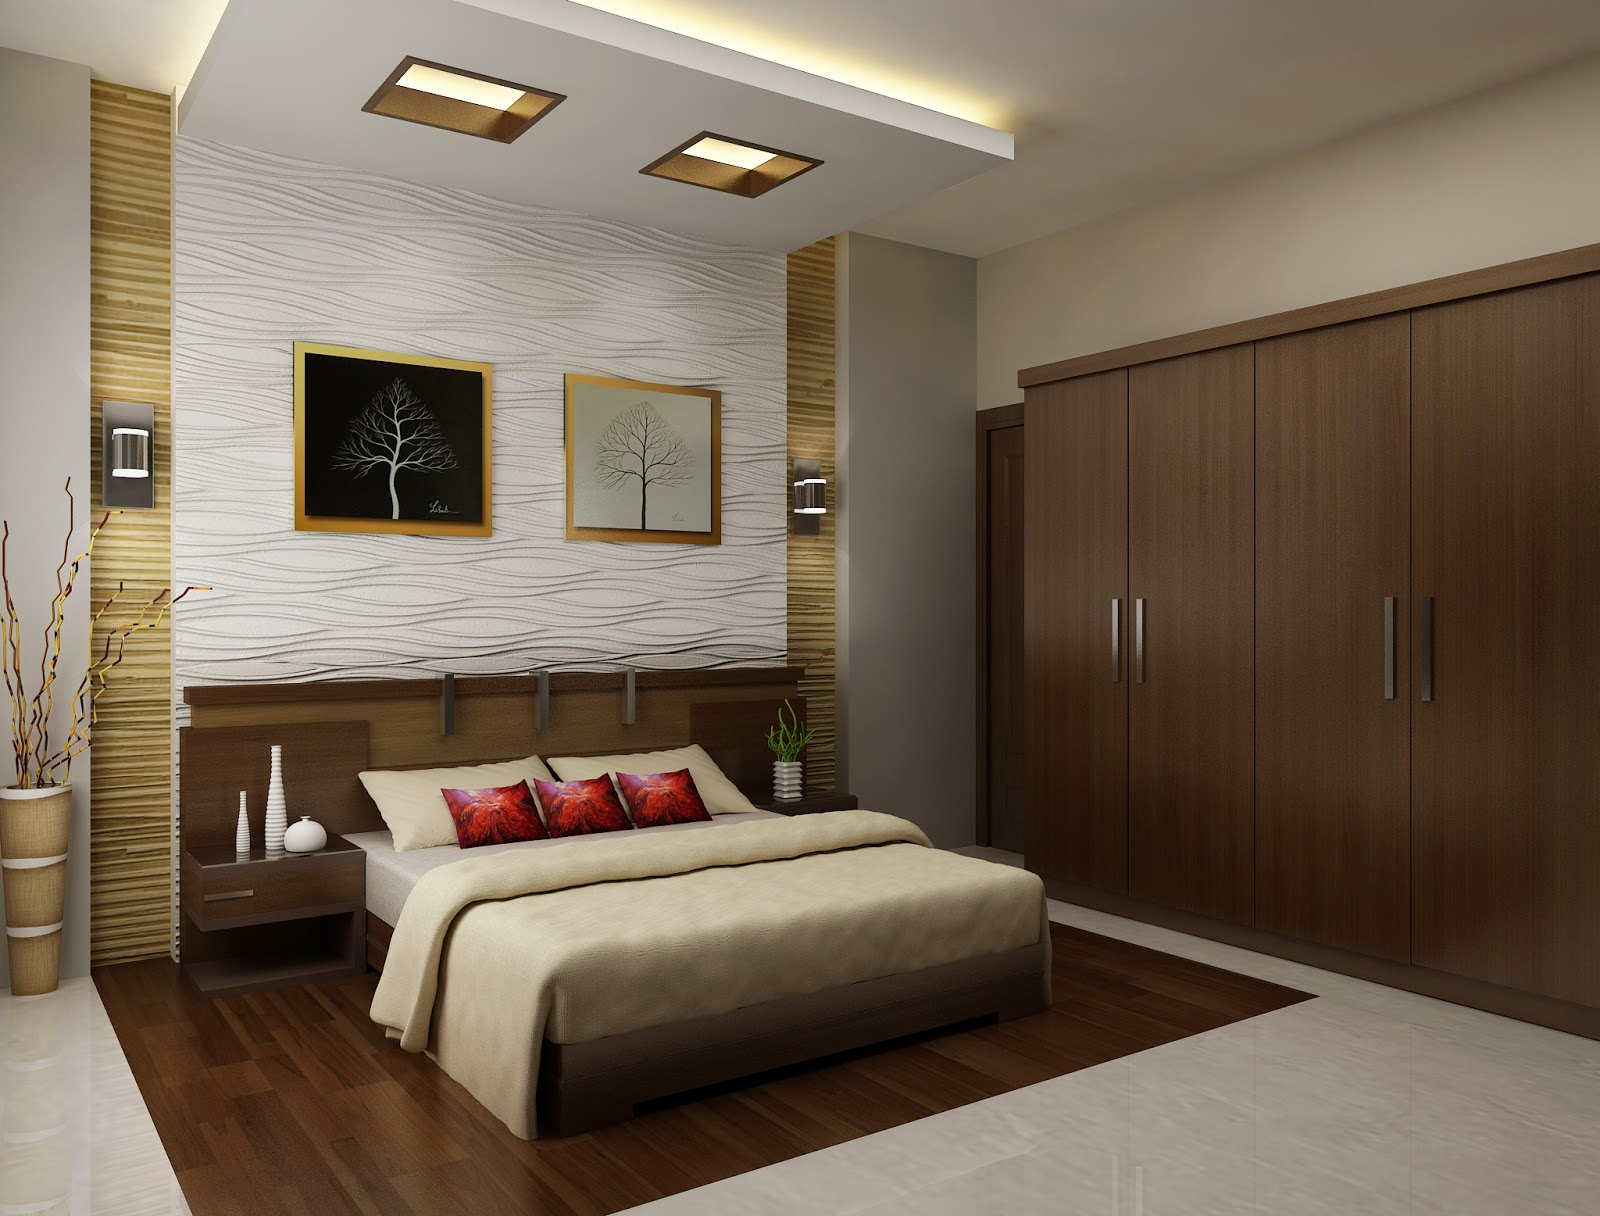 Home Interior Designs Indian Moreover House. Small Indian Bedroom Interior Design Ideas   Bedroom Style Ideas